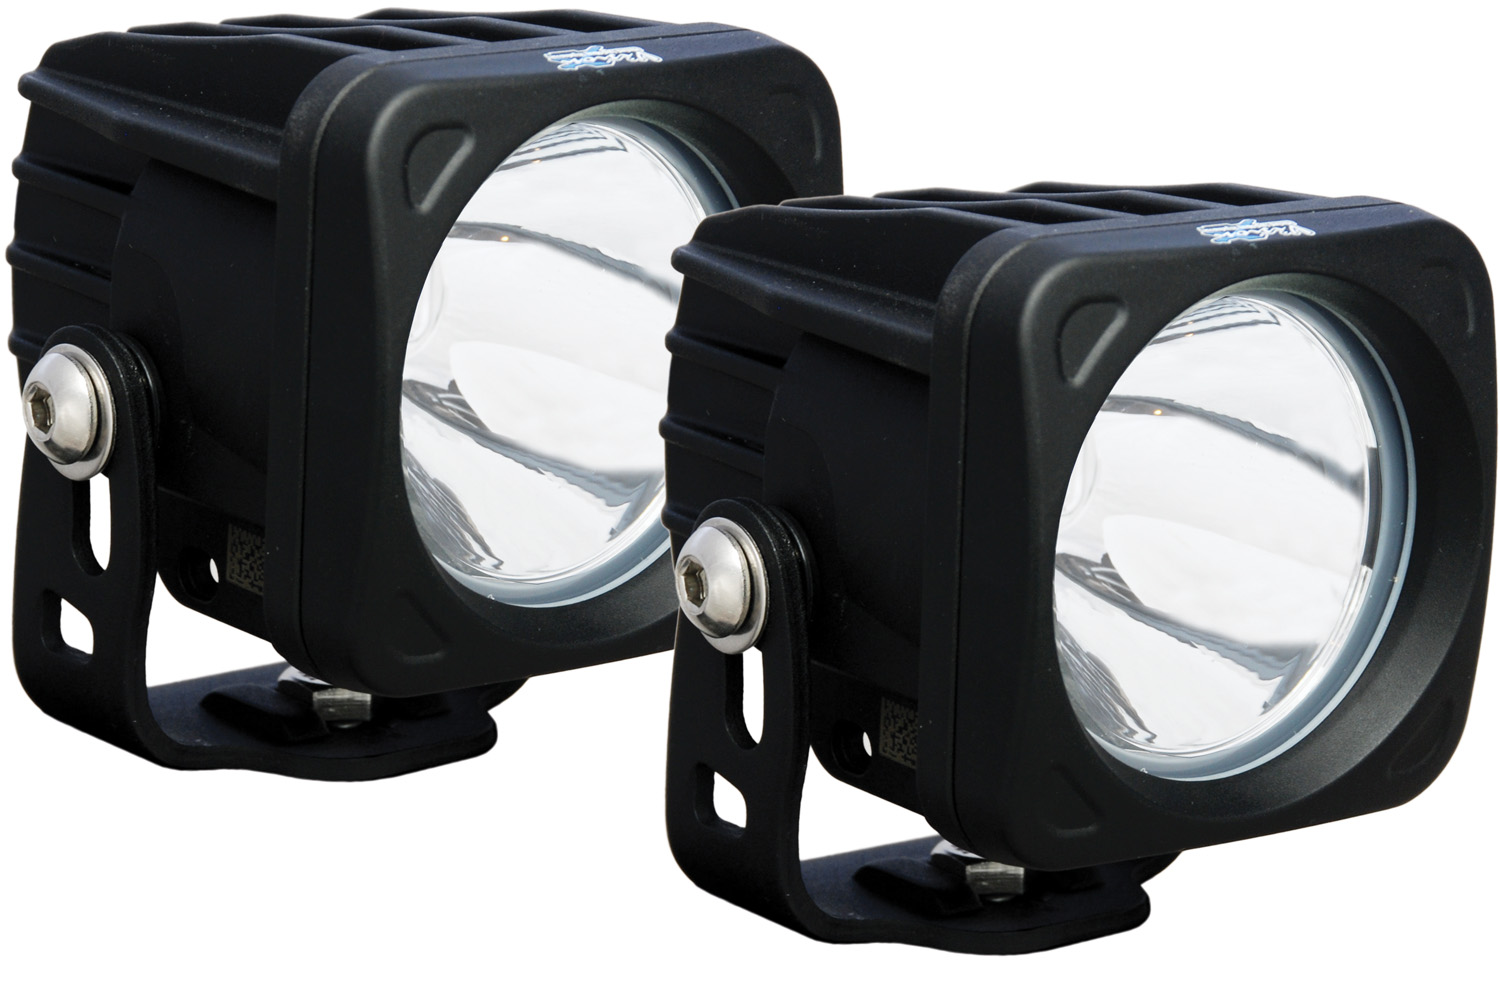 OPTIMUS SQUARE BLACK 1 10W LED 10° NARROW KIT OF 2 LIGHTS